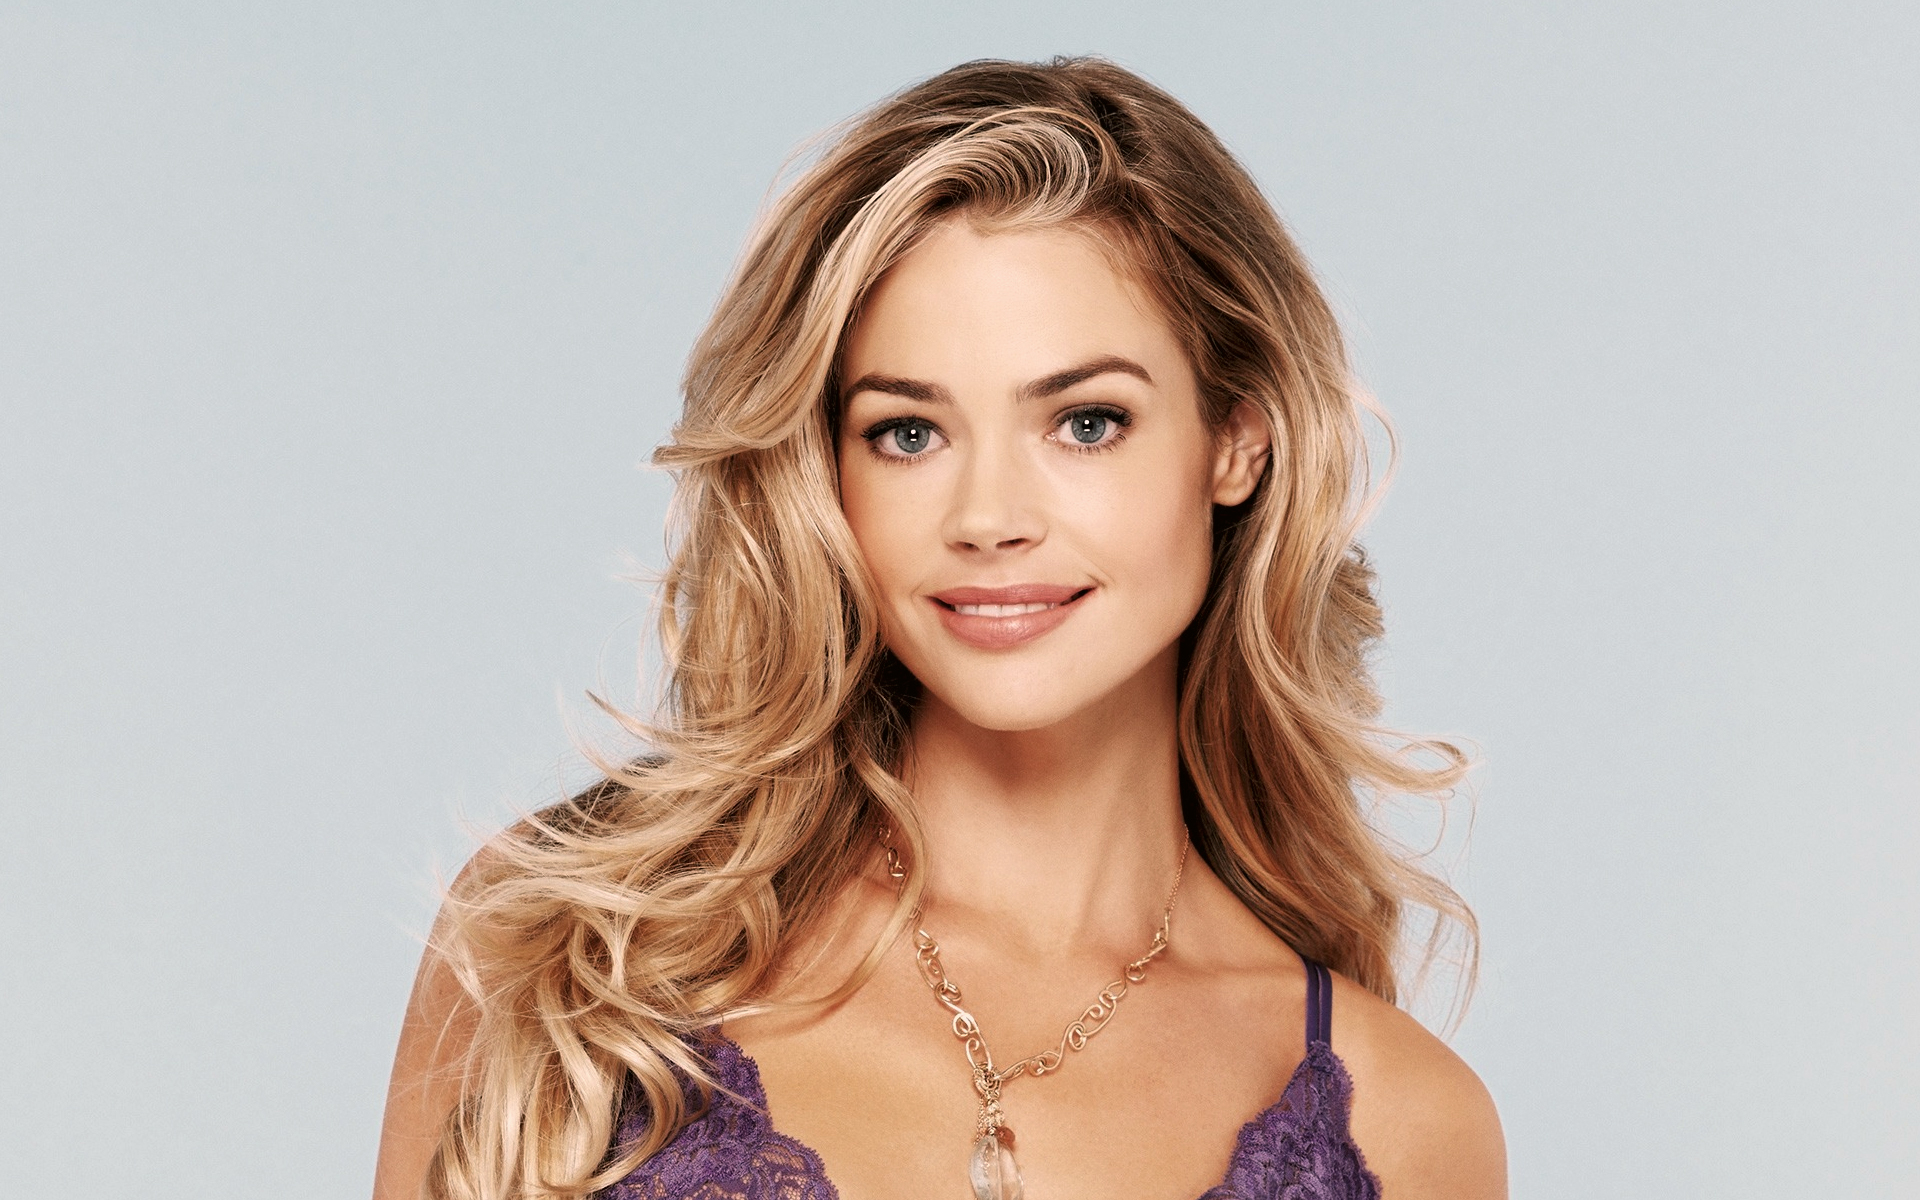 denise richards 1920x1200 wallpapers - photo #34